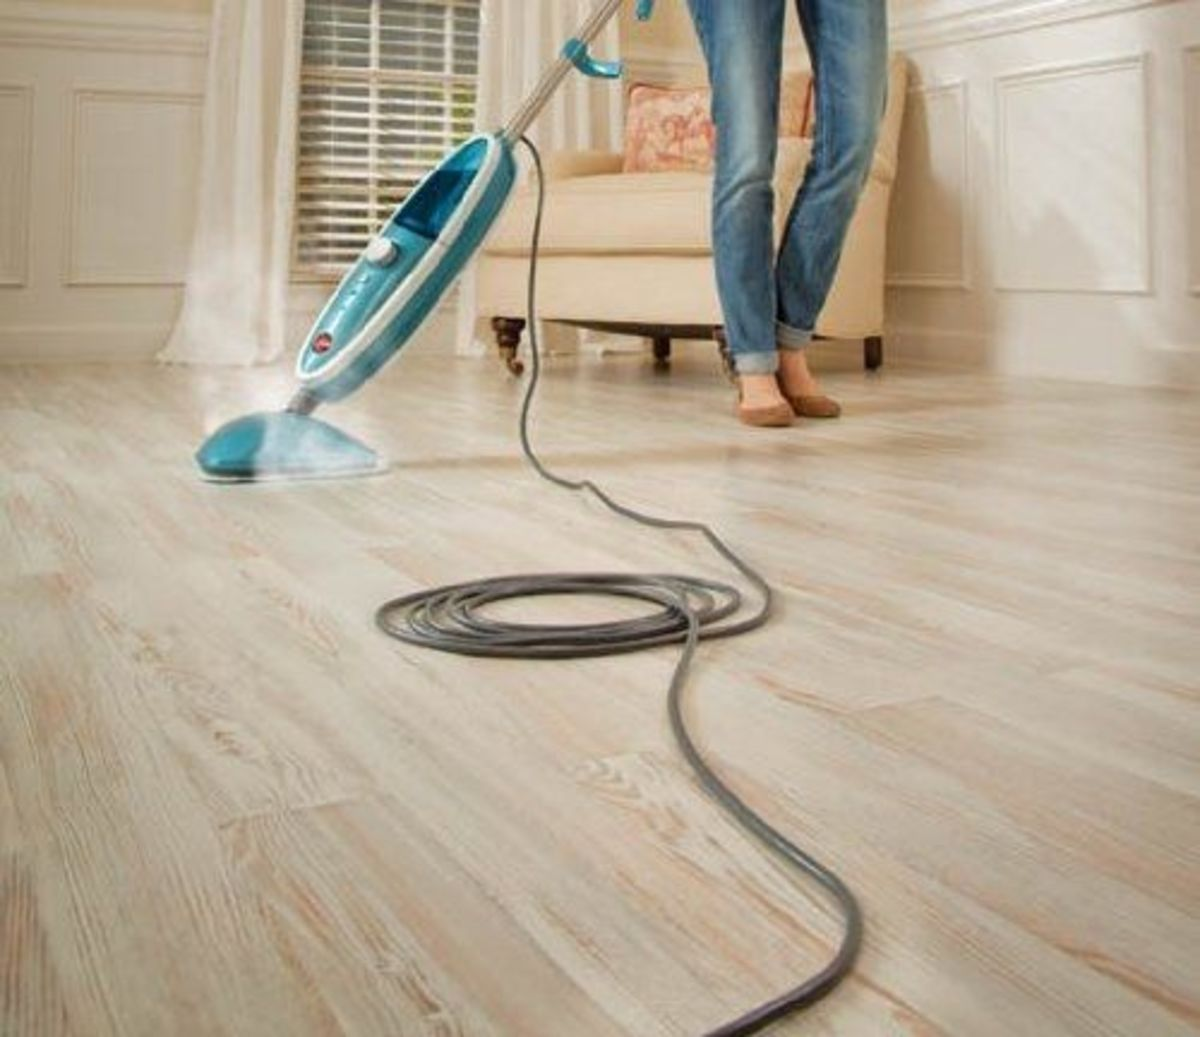 What Is the Best Way to Clean Laminate Wood Floors?